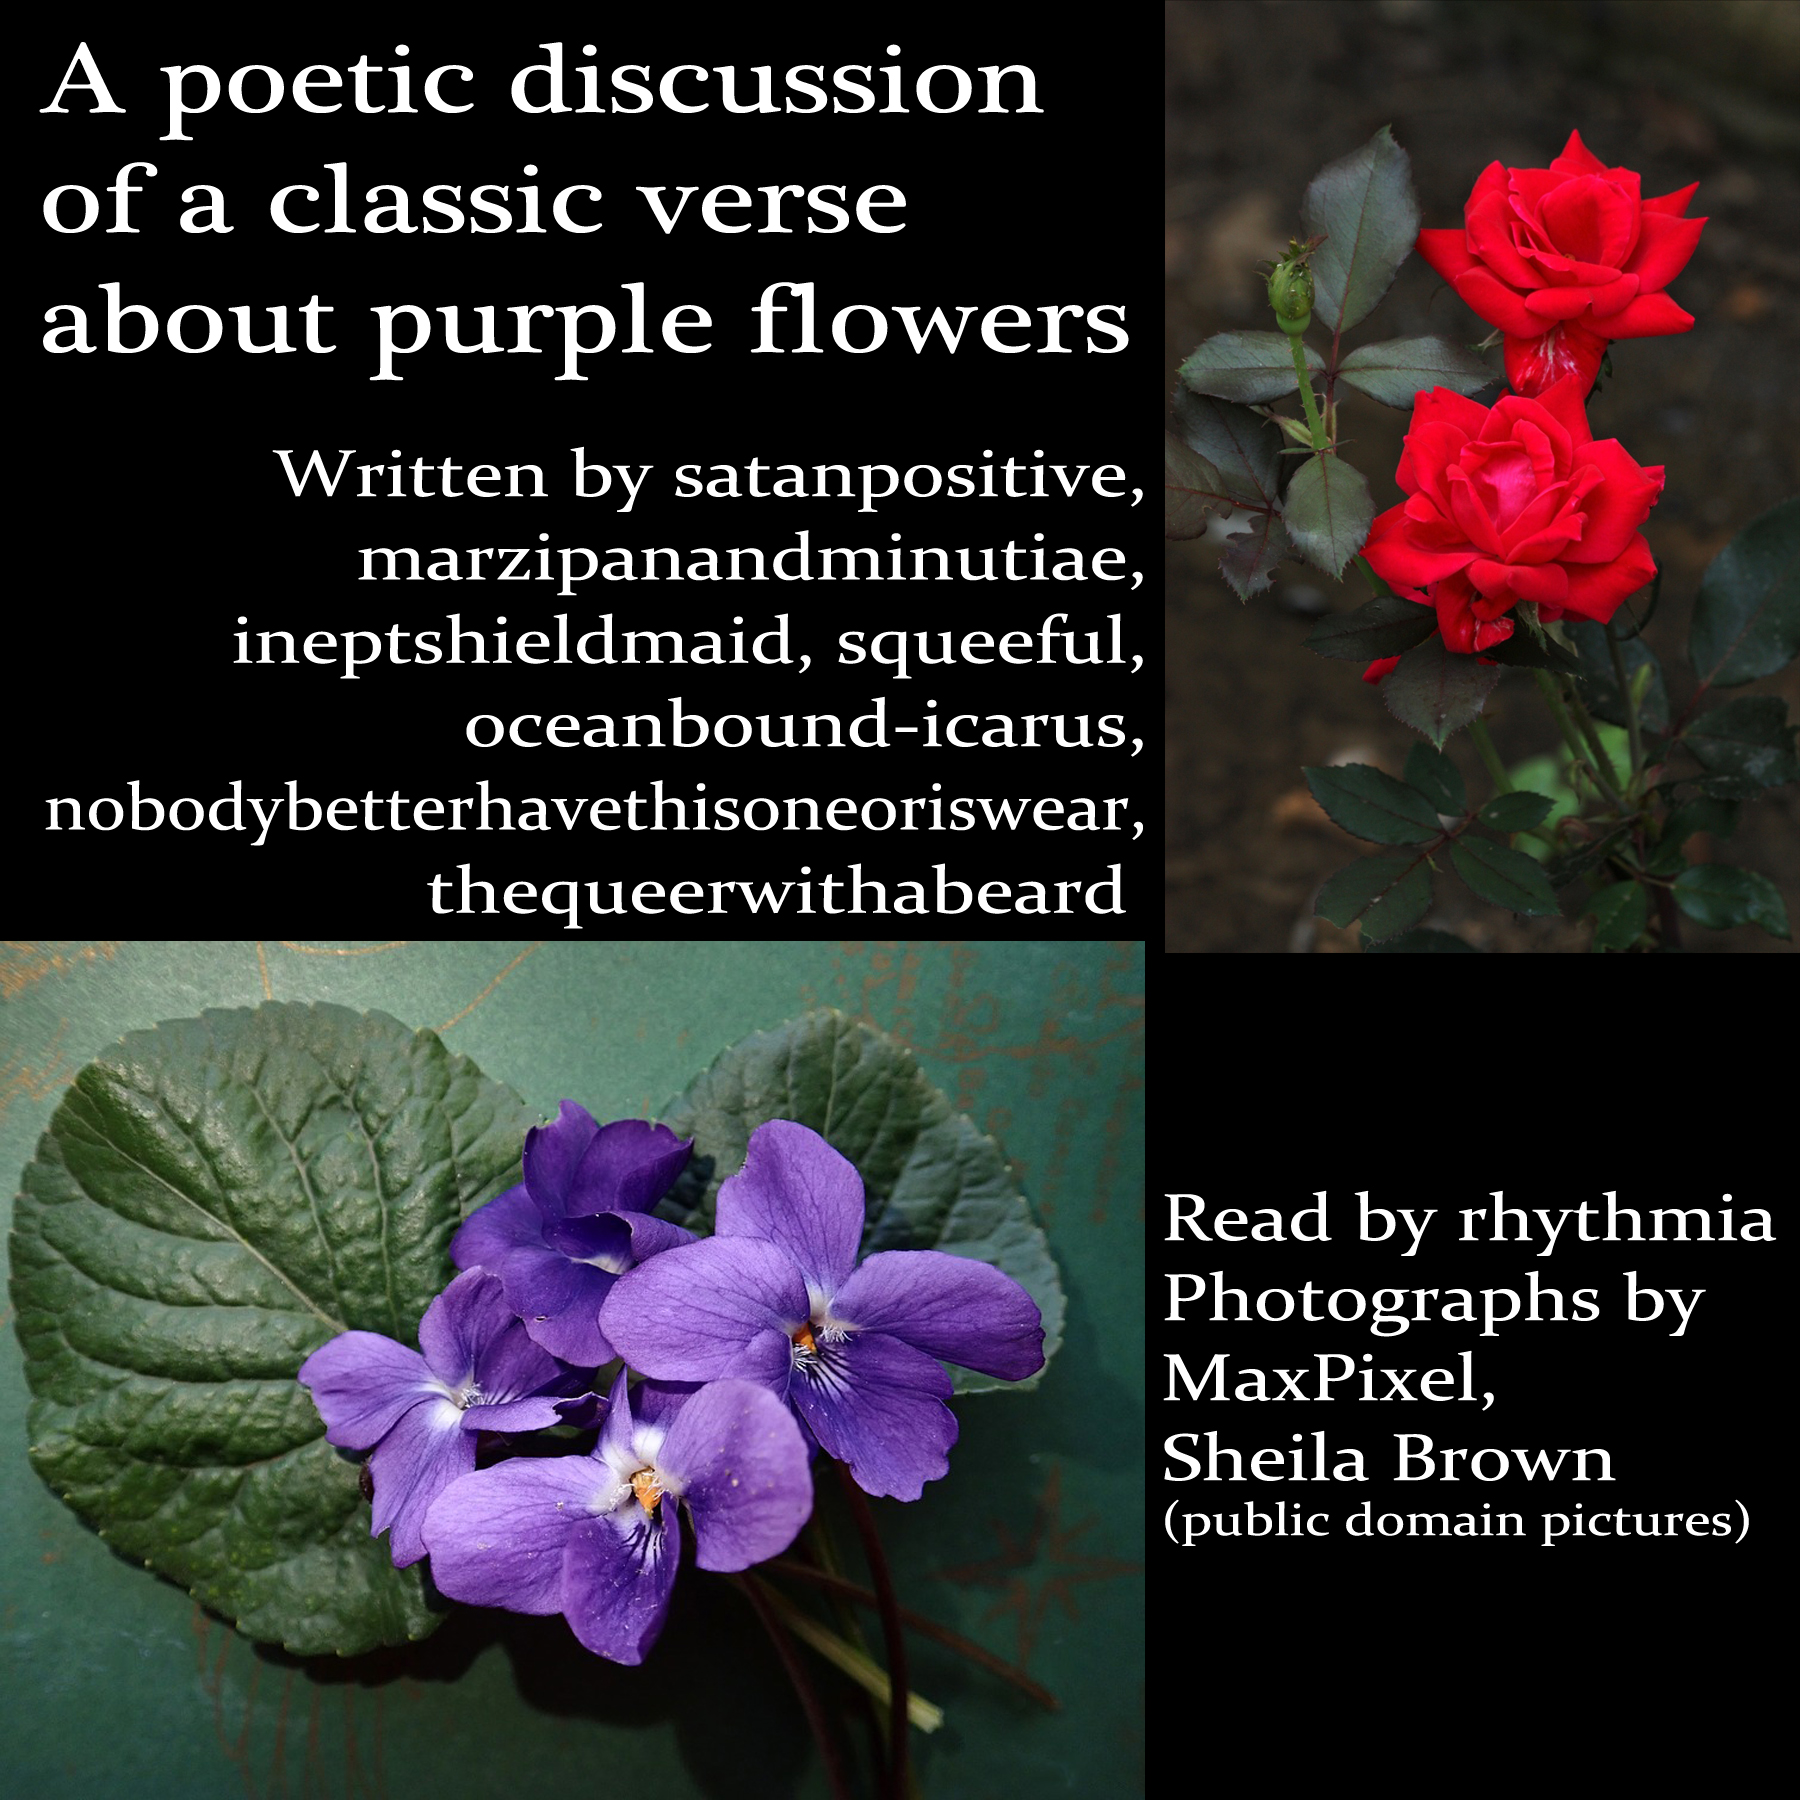 Black background. On the top right corner, a vertical photograph of two red roses. On the bottom left corner, a horizontal photograph of a spray of purple violets and leaves. Top left text reads: A poetic discussion of a classic verse about purple flowers. Text below reads: Written by satanpositive, marzipanandminutiae, ineptshieldmaid, squeeful, oceanbound-icarus, nobodybetterhavethisoneoriswear, thequeerwithabeard. Bottom right text reads: Read by rhythmia Photographs by MaxPixel, Sheila Brown (public domain pictures)